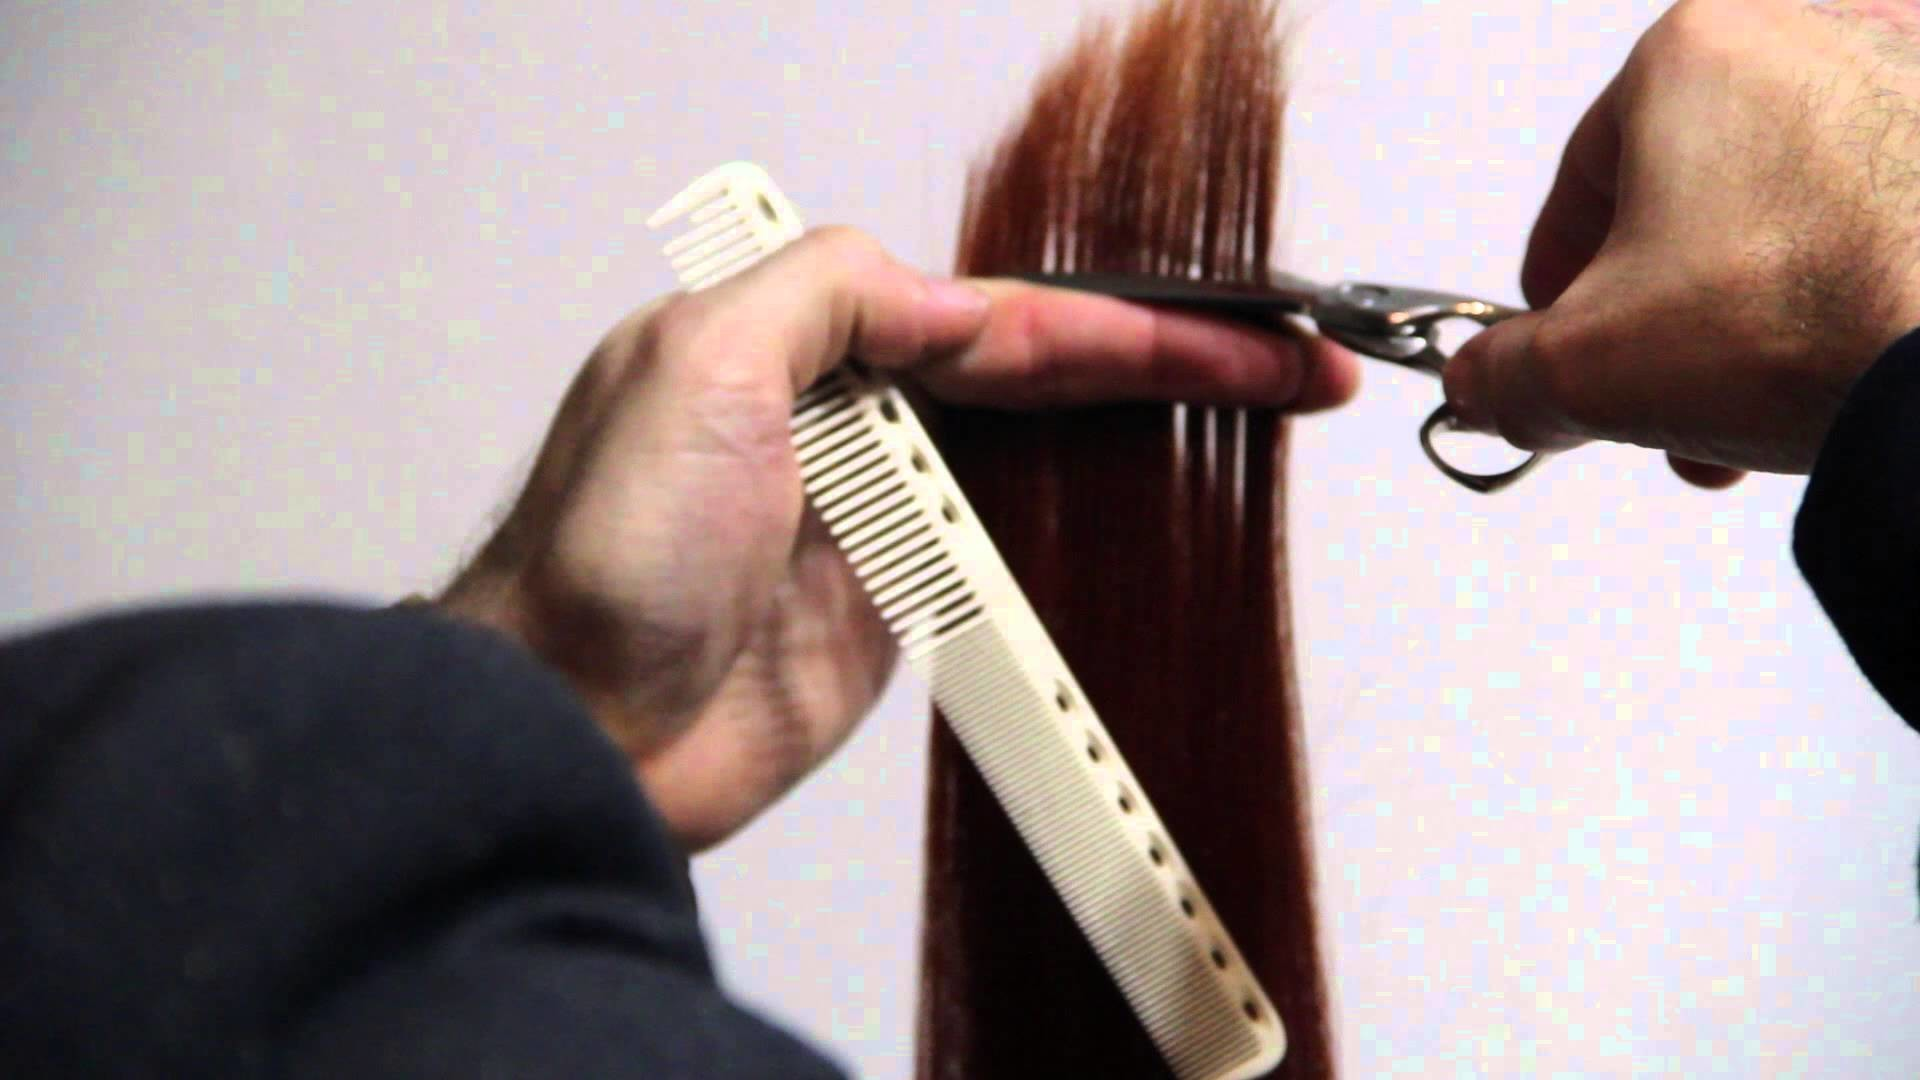 HIGH QUALITY HAIR SCISSORS COMPARED TO ENTRY LEVEL HAIR SCISSORS – YouTube